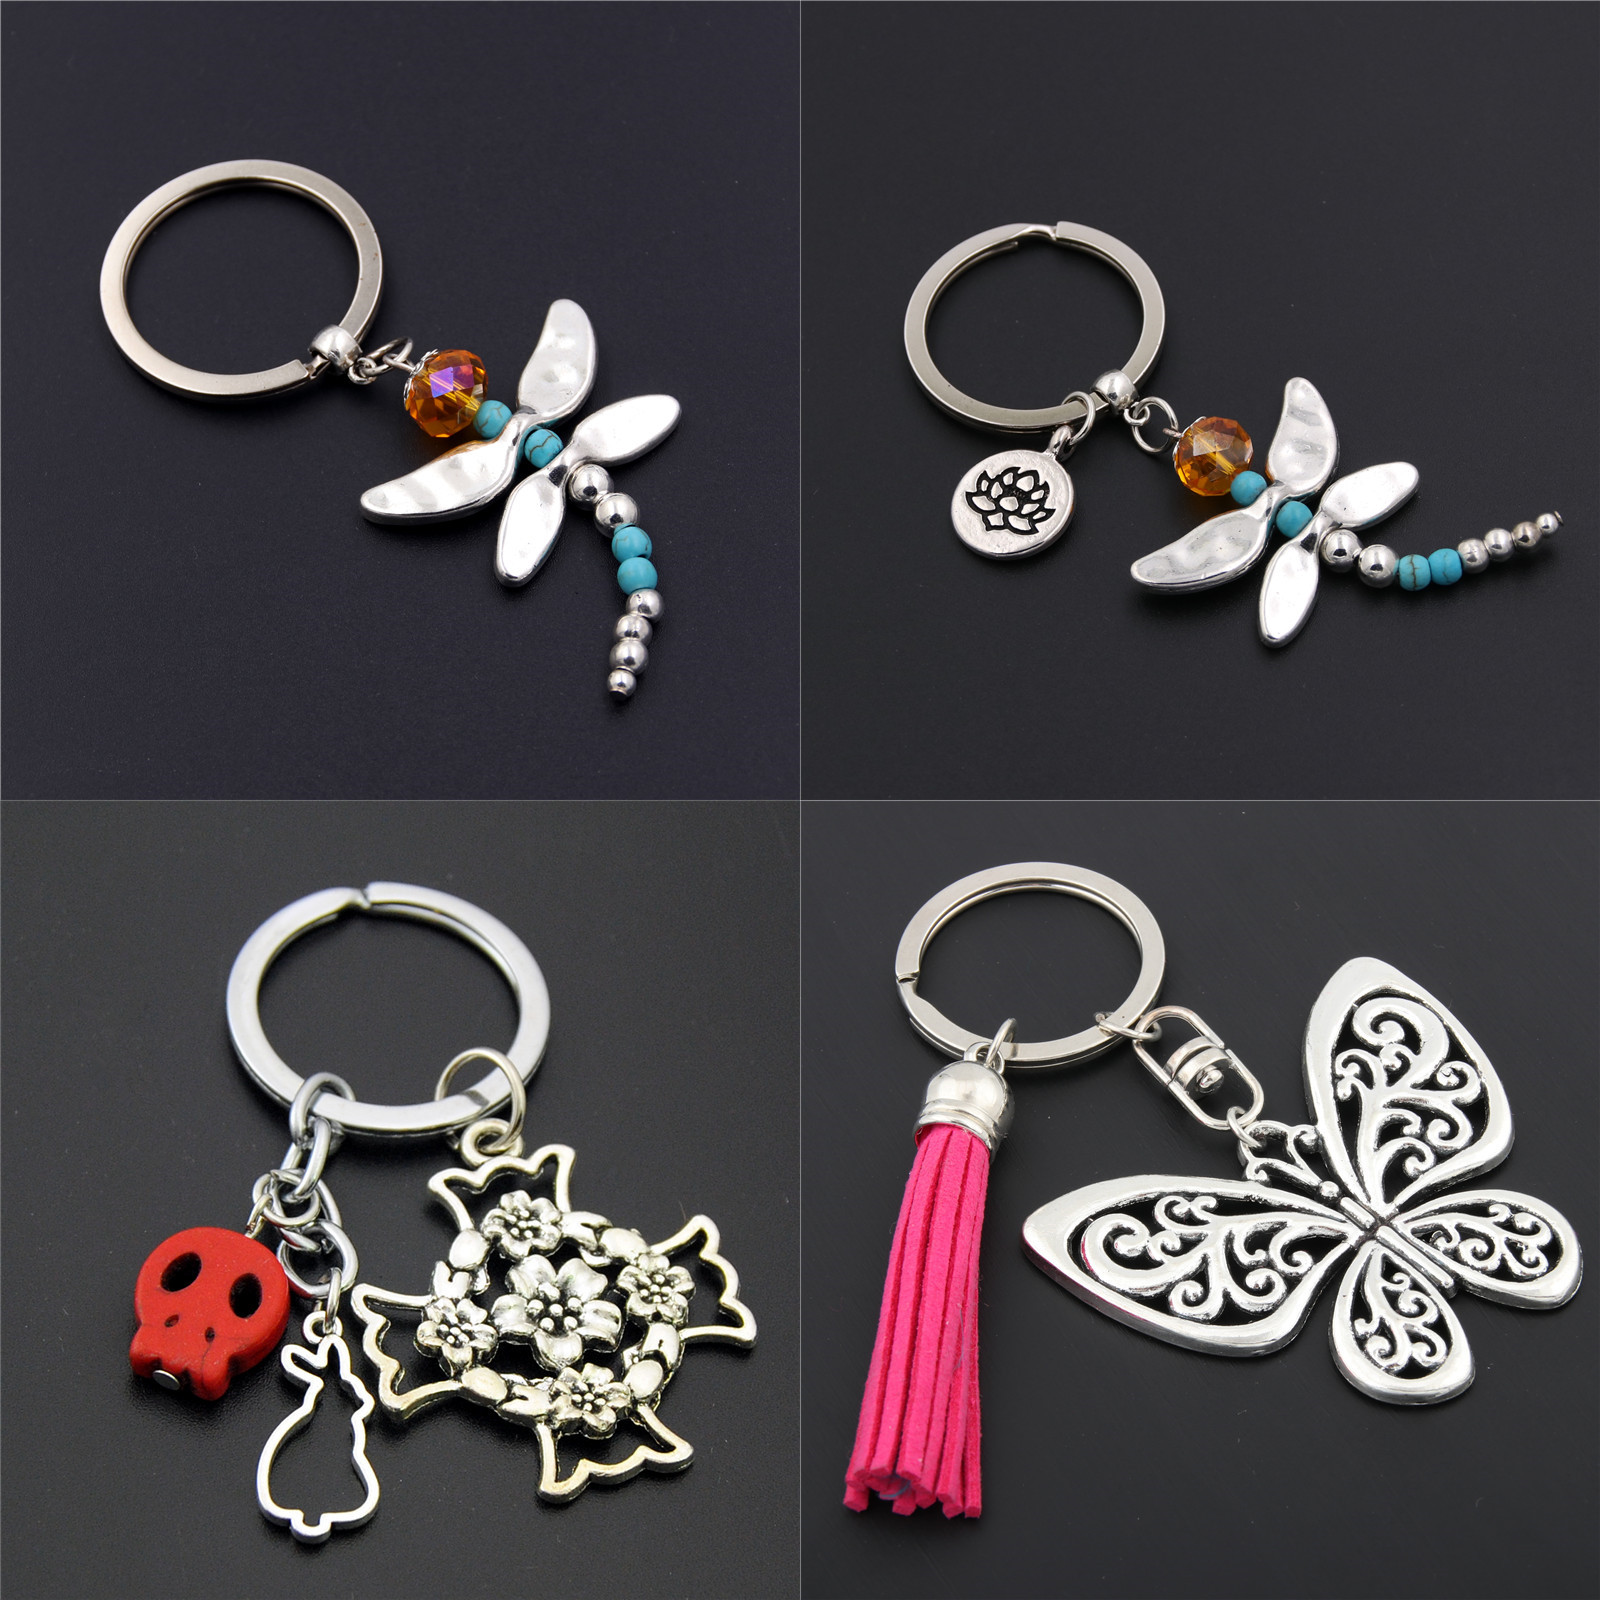 1pc Dragonfly Charms With Lotus Keychains Cross Keyring Butterfly Pendant Key Chain For Women Animal Jewlery